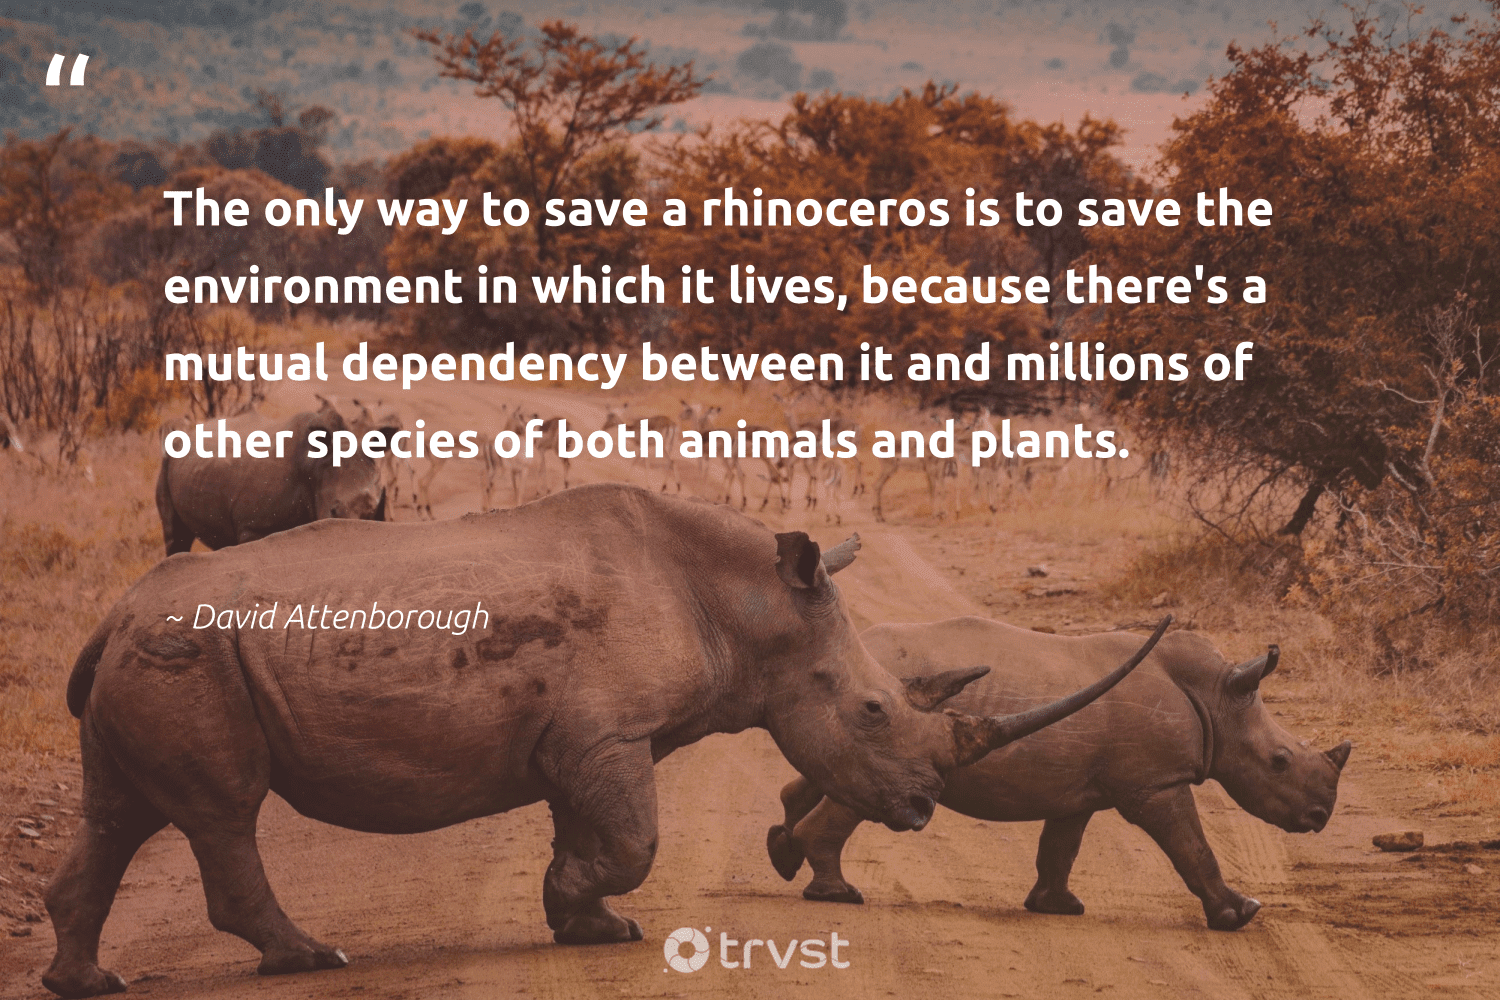 """""""The only way to save a rhinoceros is to save the environment in which it lives, because there's a mutual dependency between it and millions of other species of both animals and plants.""""  - David Attenborough #trvst #quotes #environment #animals #rhinoceros #planet #wild #noplanetb #dogood #nature #amazingworld #climatechange"""